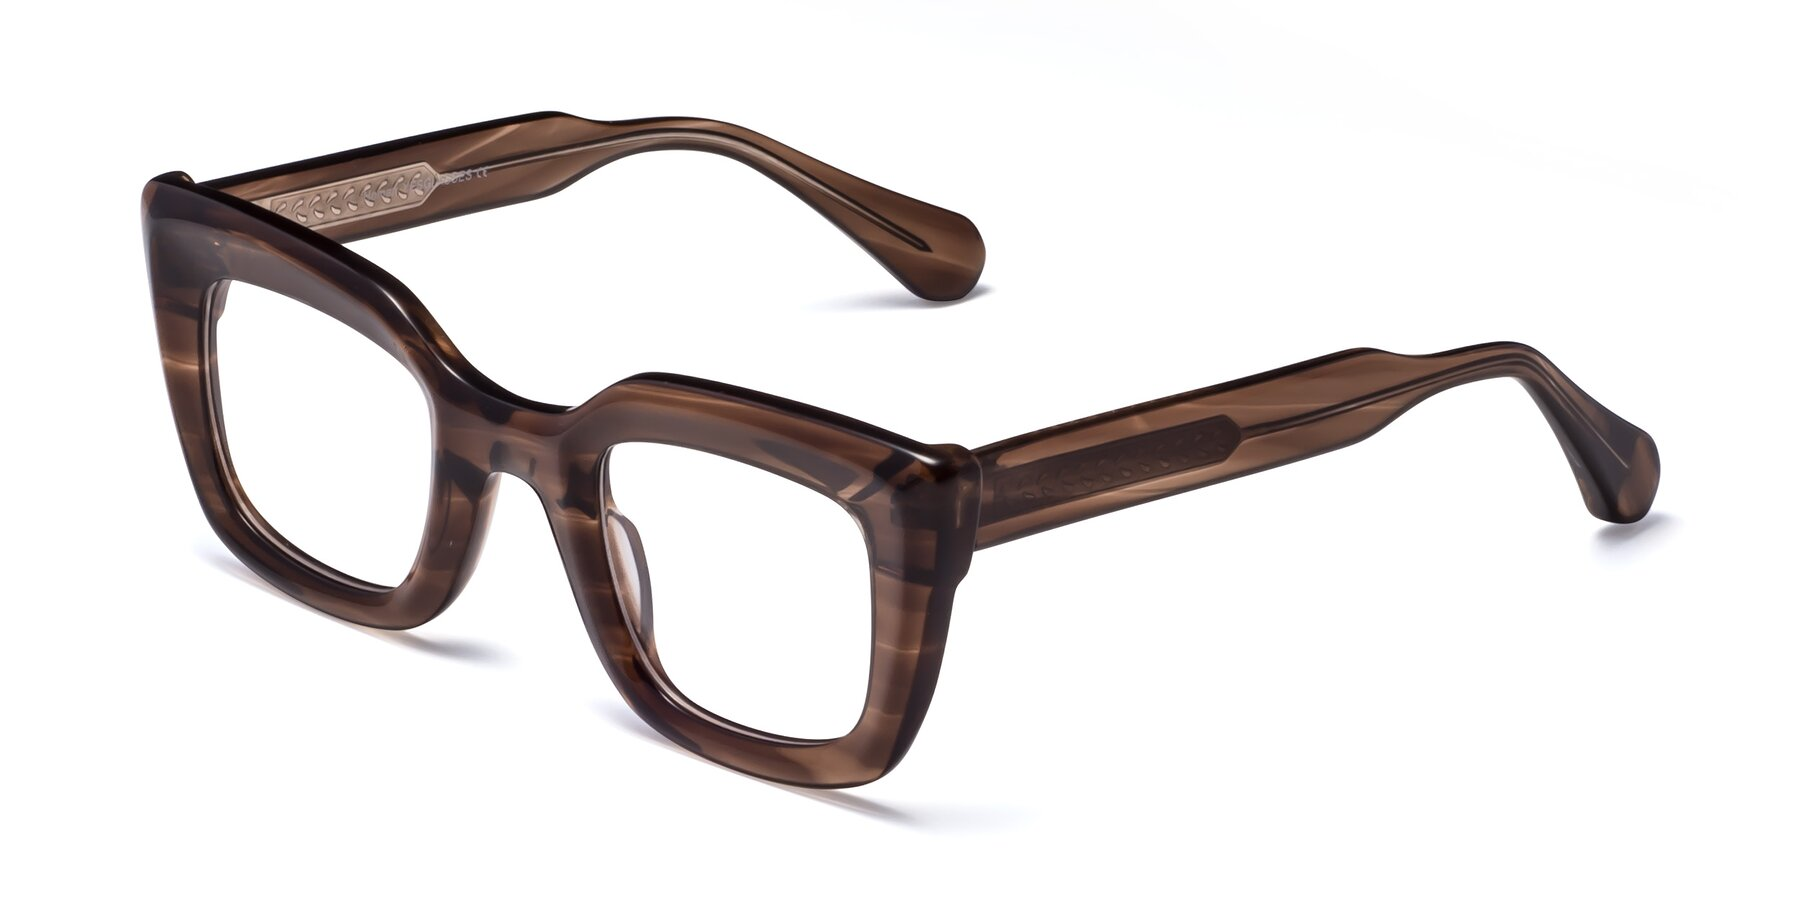 Angle of Homan in Chocolate with Clear Blue Light Blocking Lenses